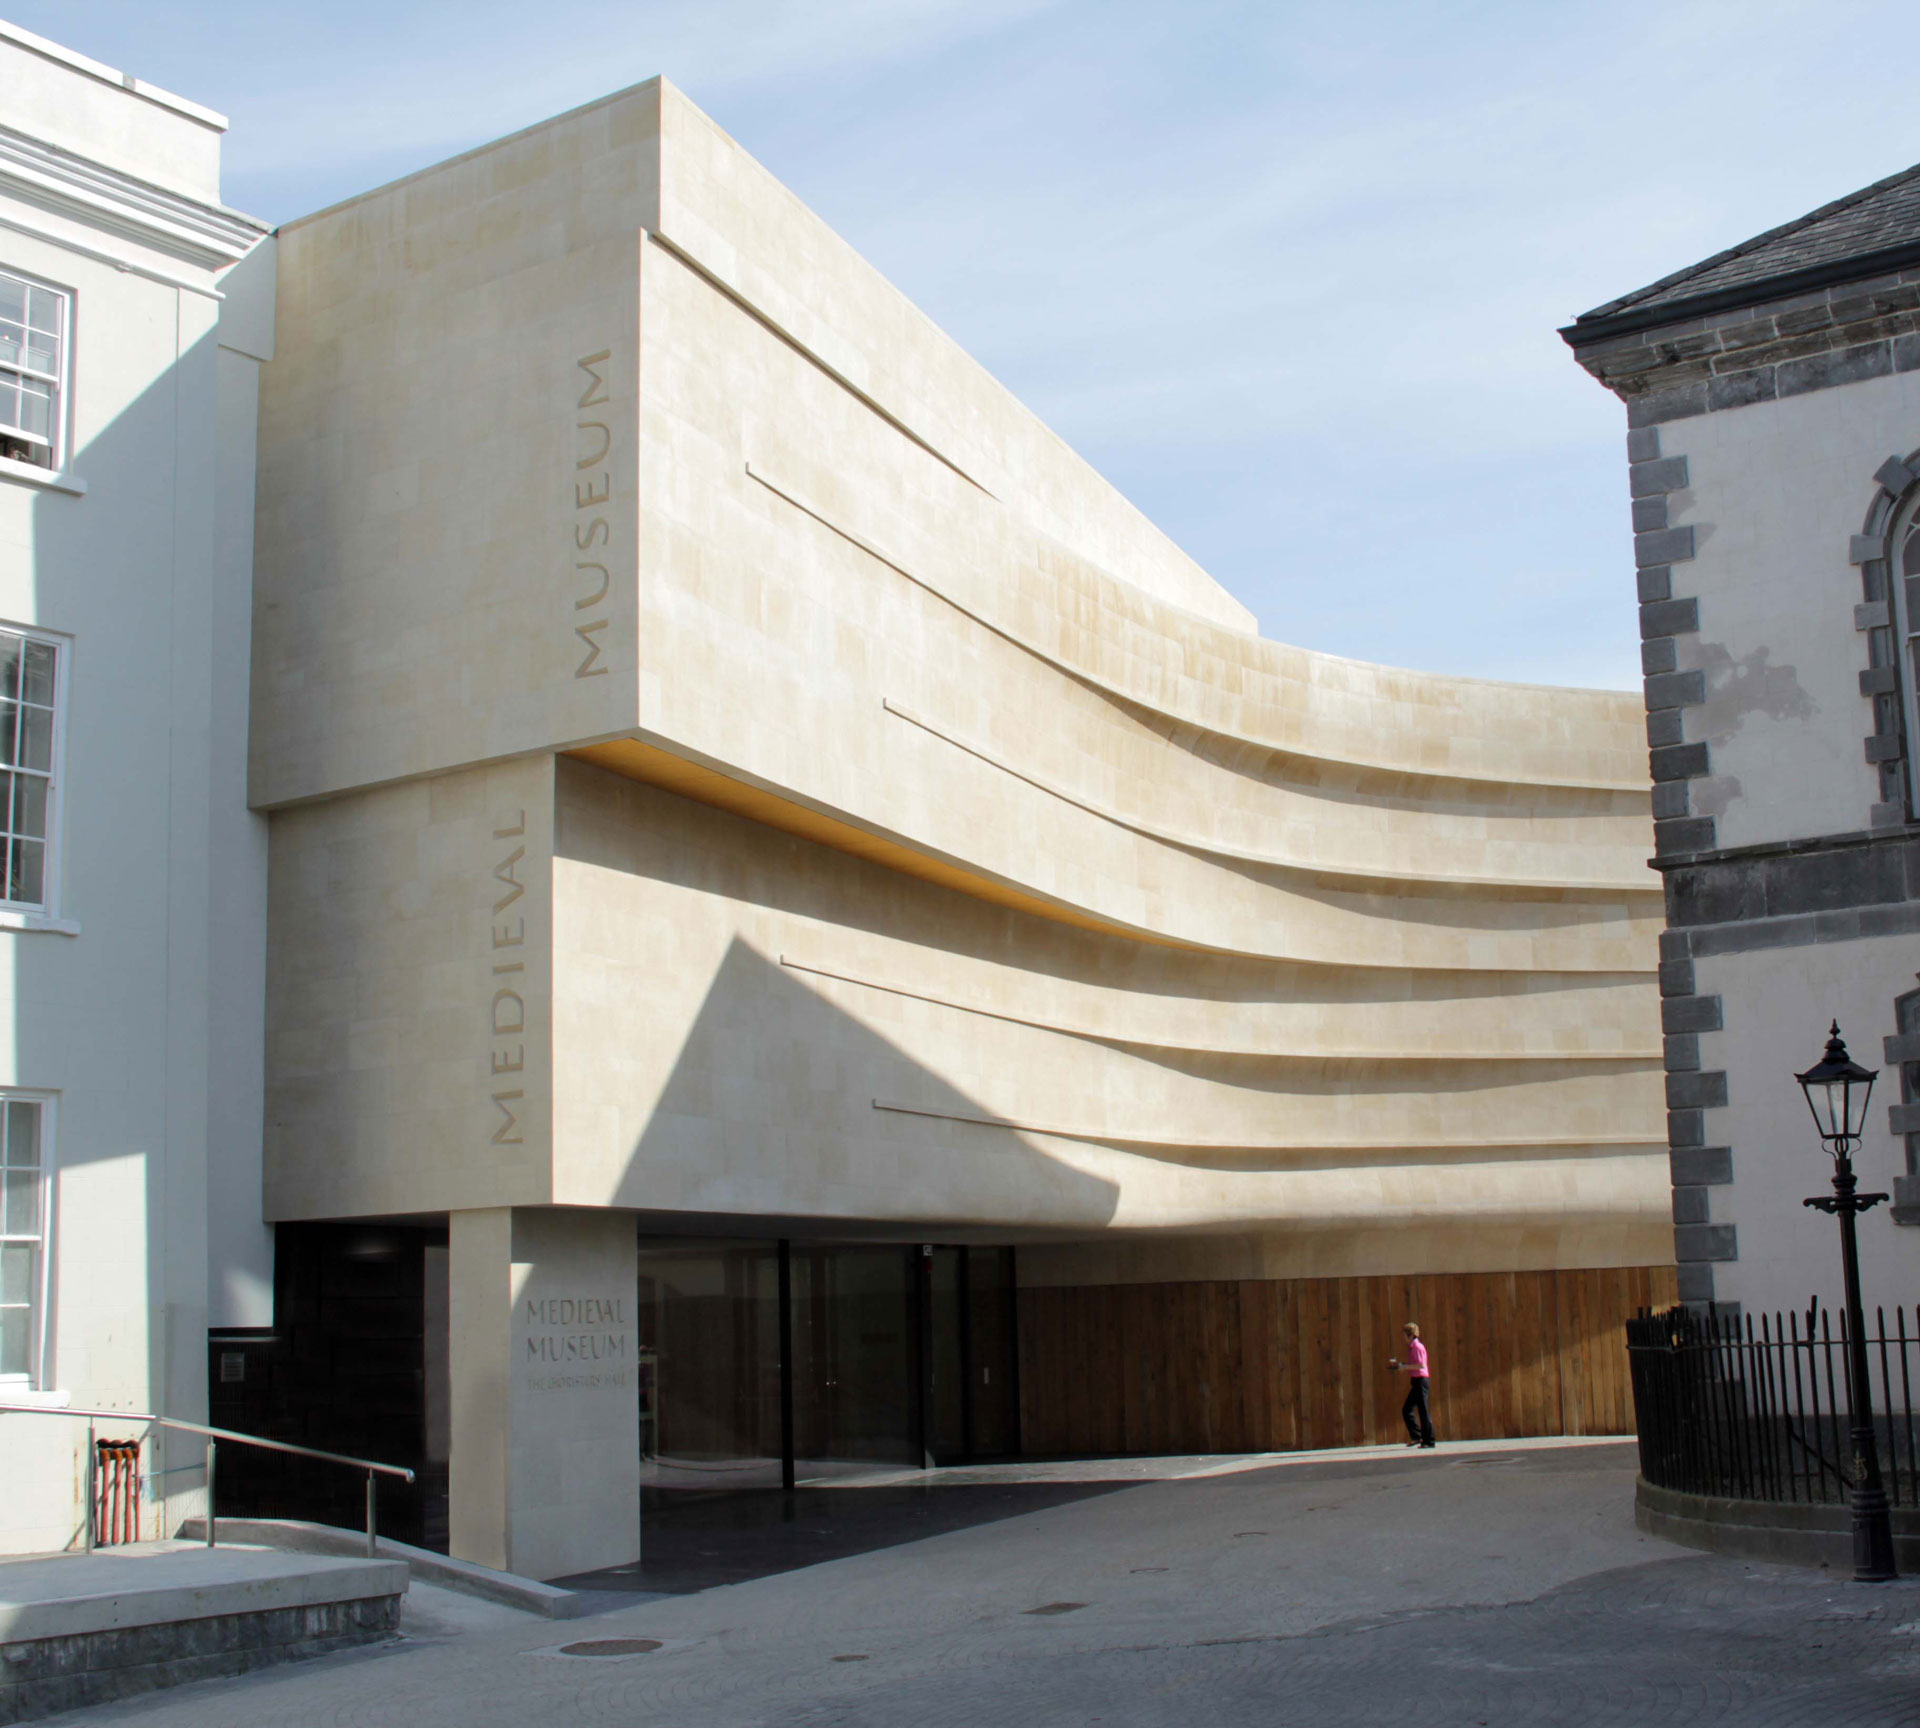 Waterford Medieval Museum. Client, Waterford City Council. Engineer, Frank Fox & Associates. Architect, Waterford City Council